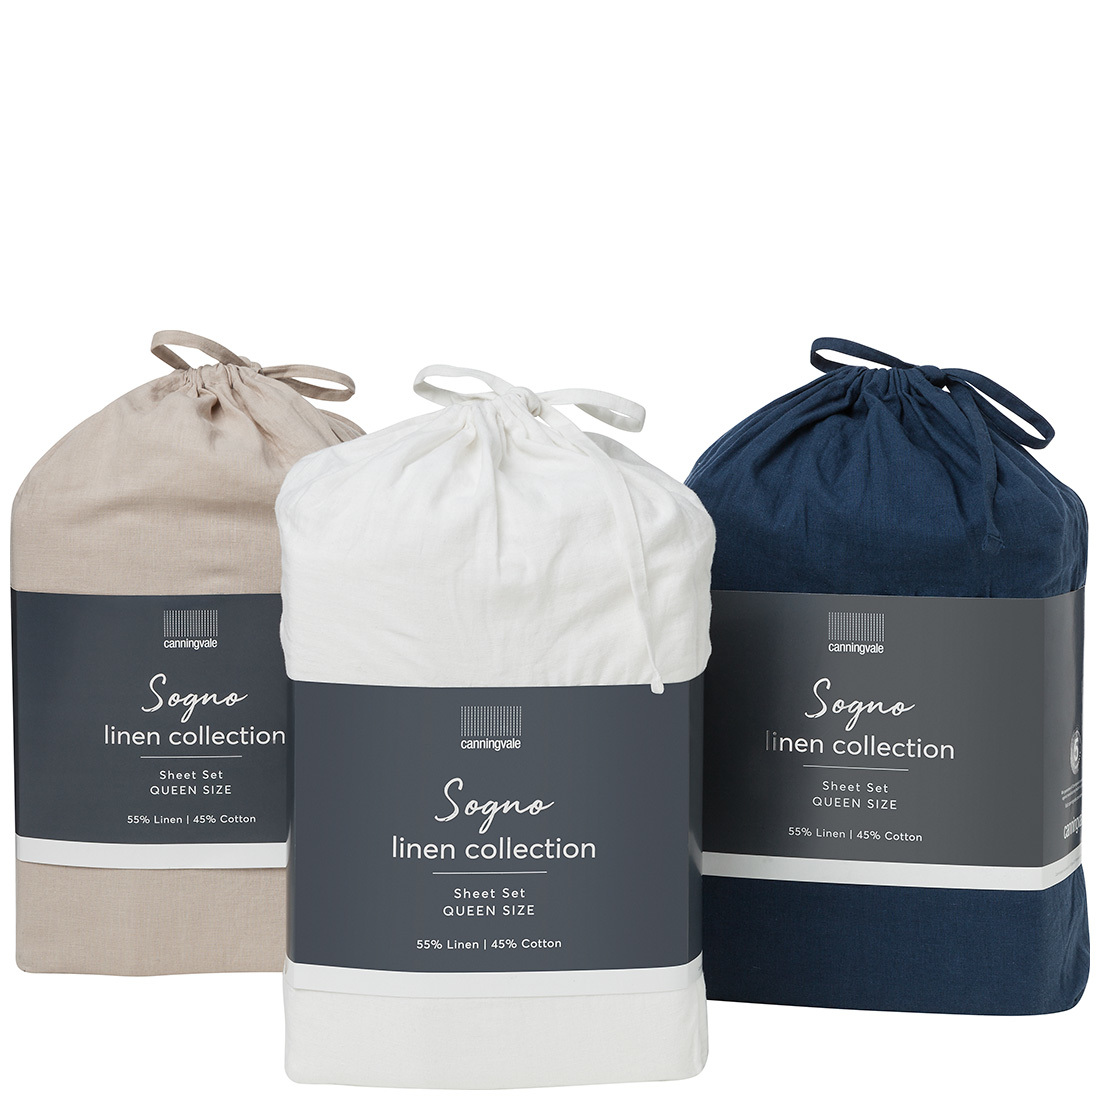 Canningvale Sogno Linen Cotton Sheet Set